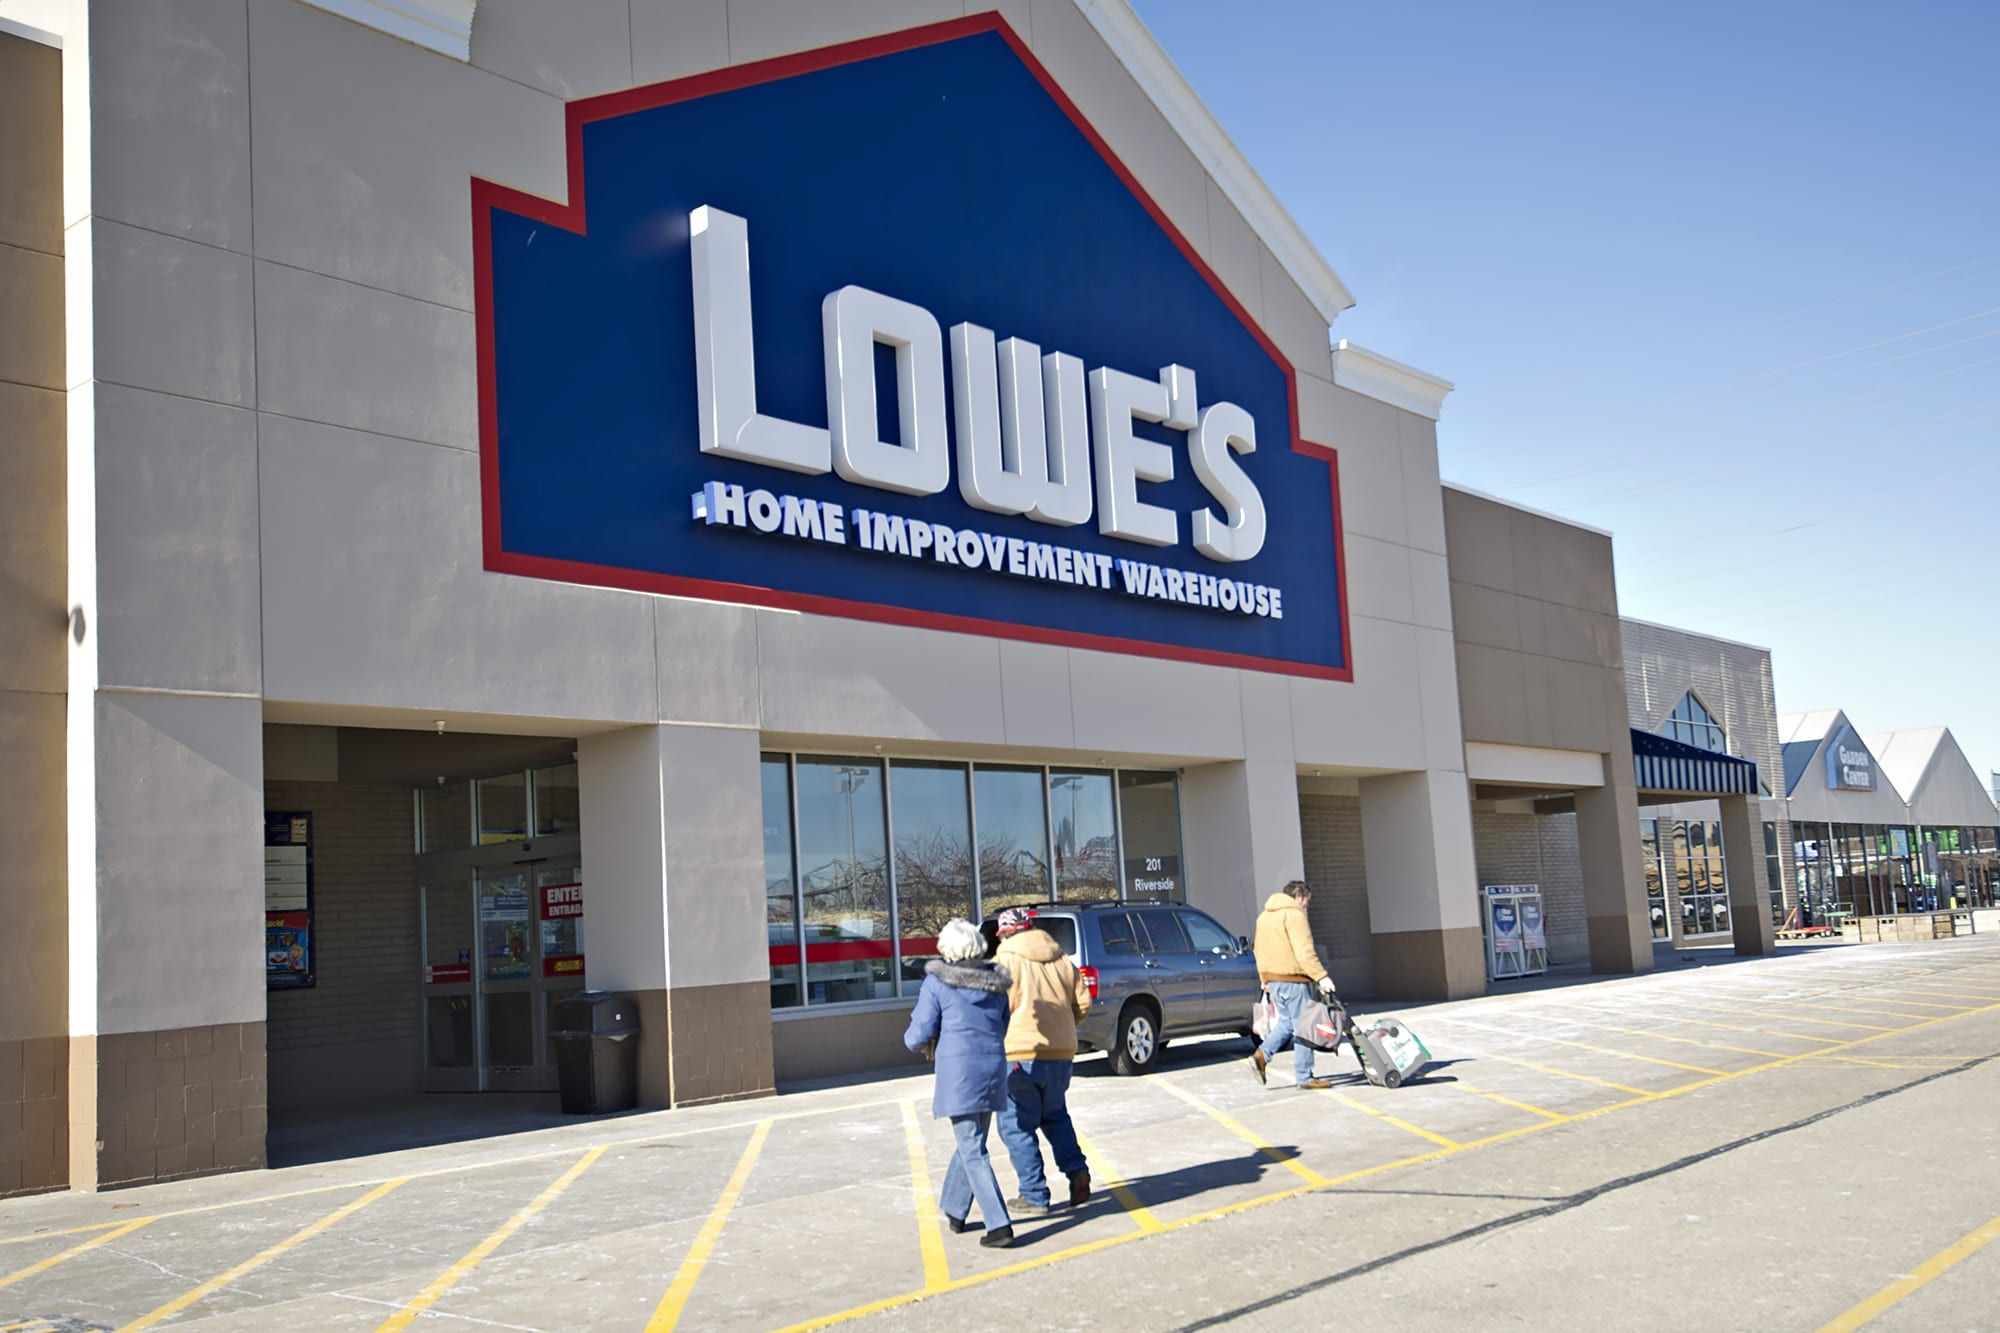 Lowes Franklin Tn Get the right job in kailua kona with company ratings & salaries. test macnica co jp